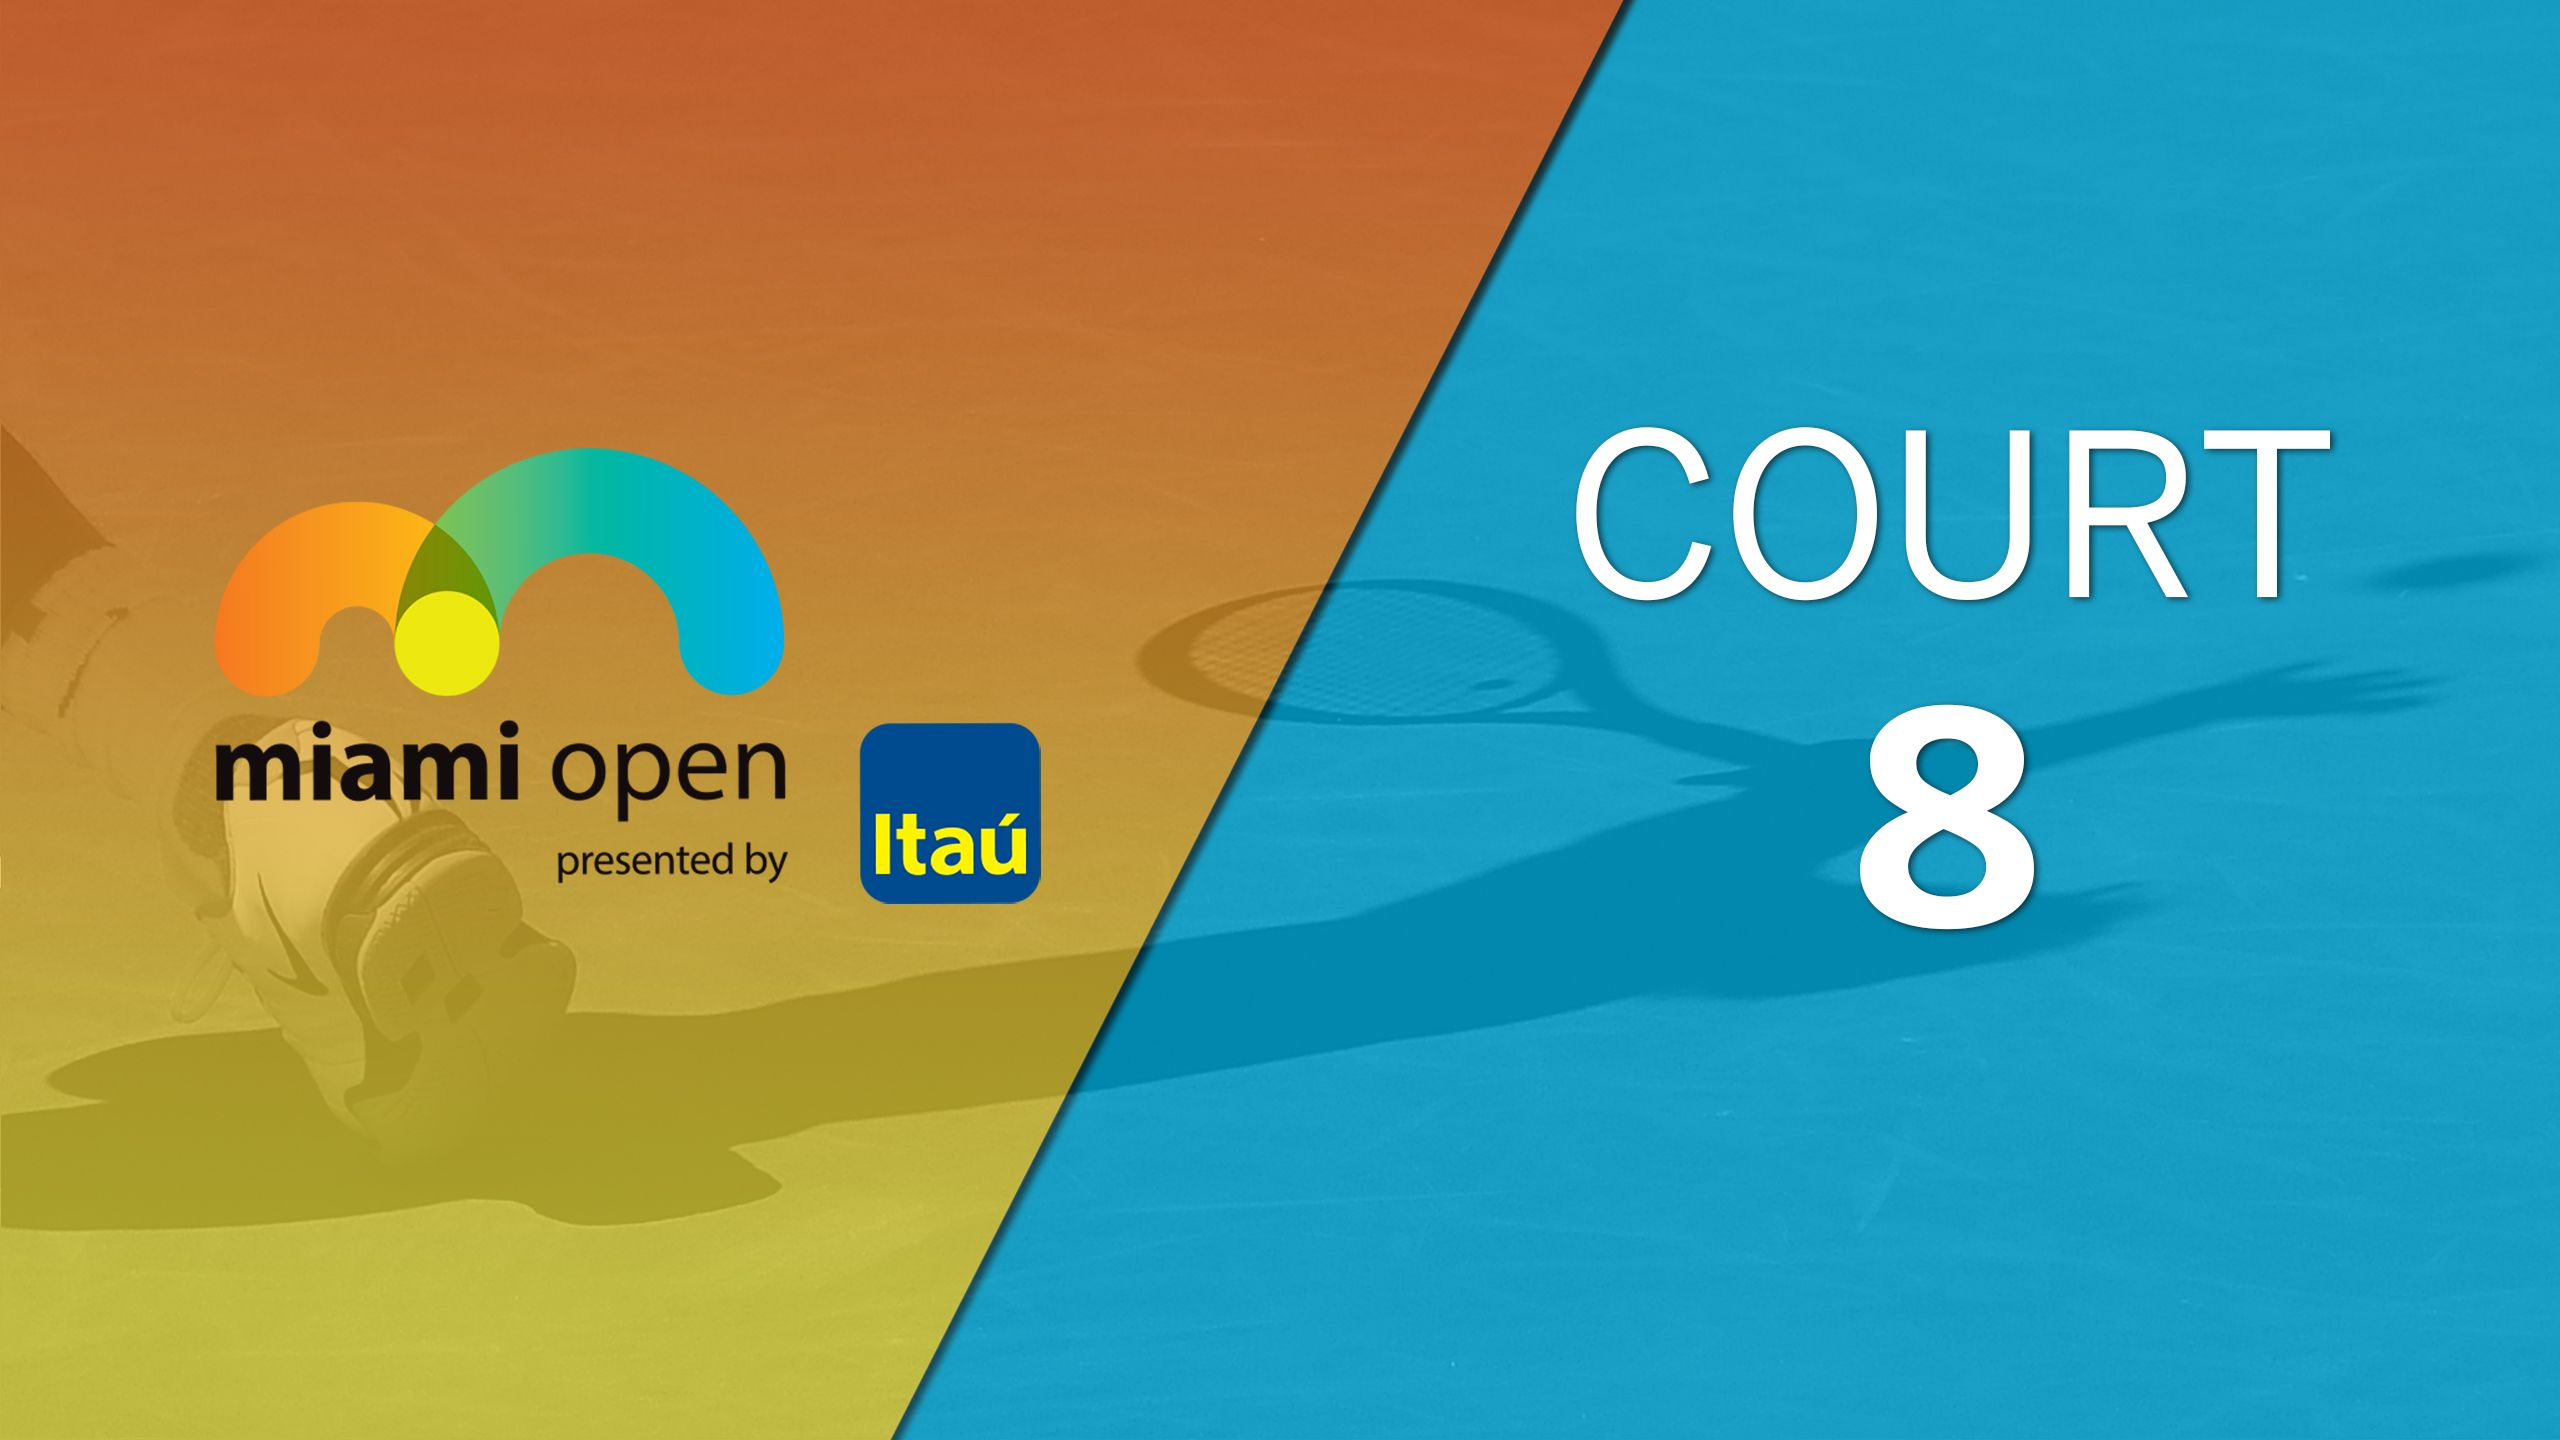 Miami Open - Court 8 (Second Round)